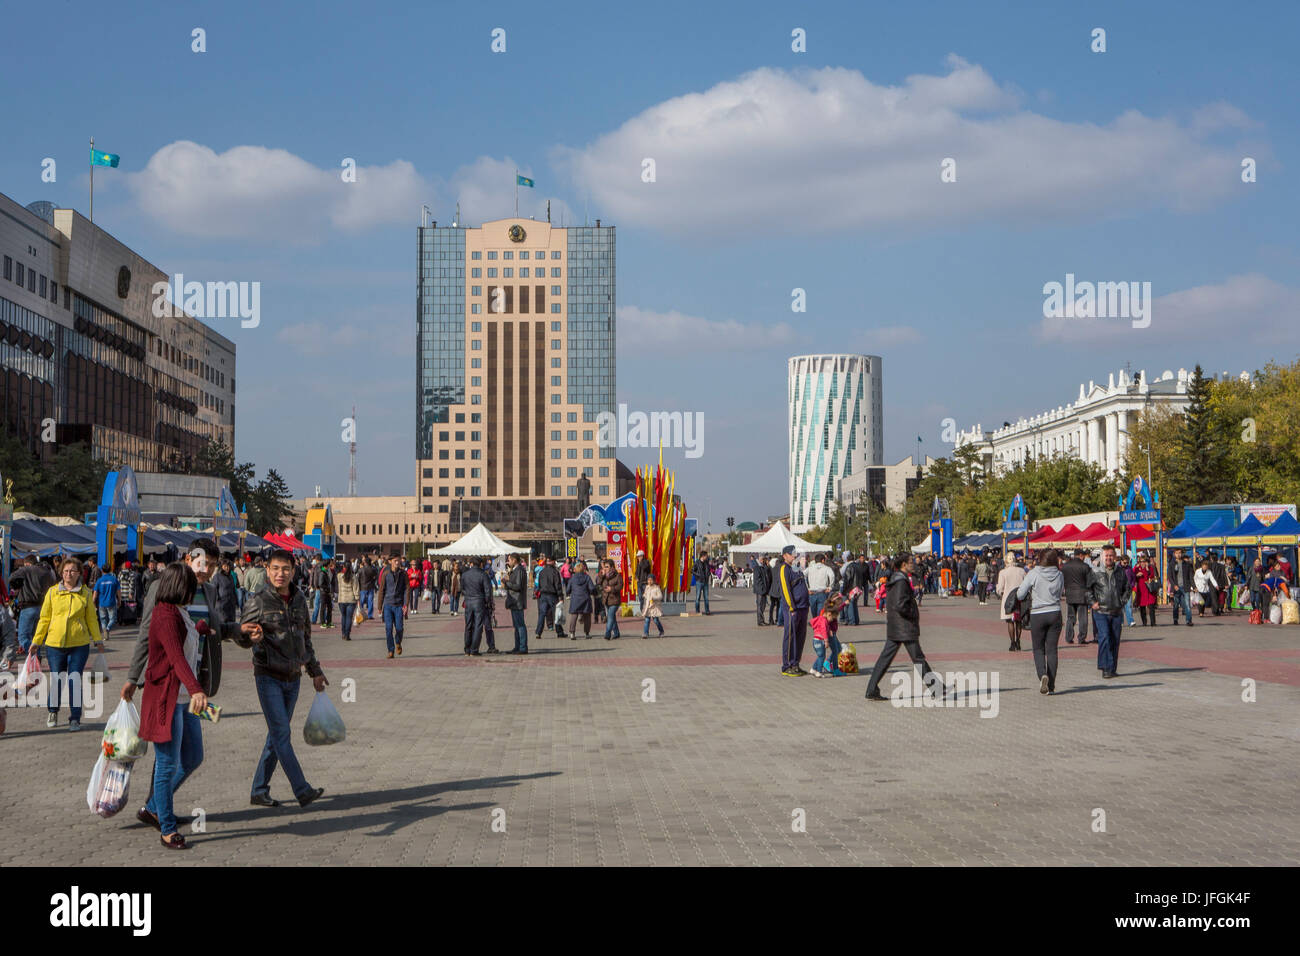 Kazakhstan, Astana City, Old City, Down Town, Gobernment Agency Building, - Stock Image